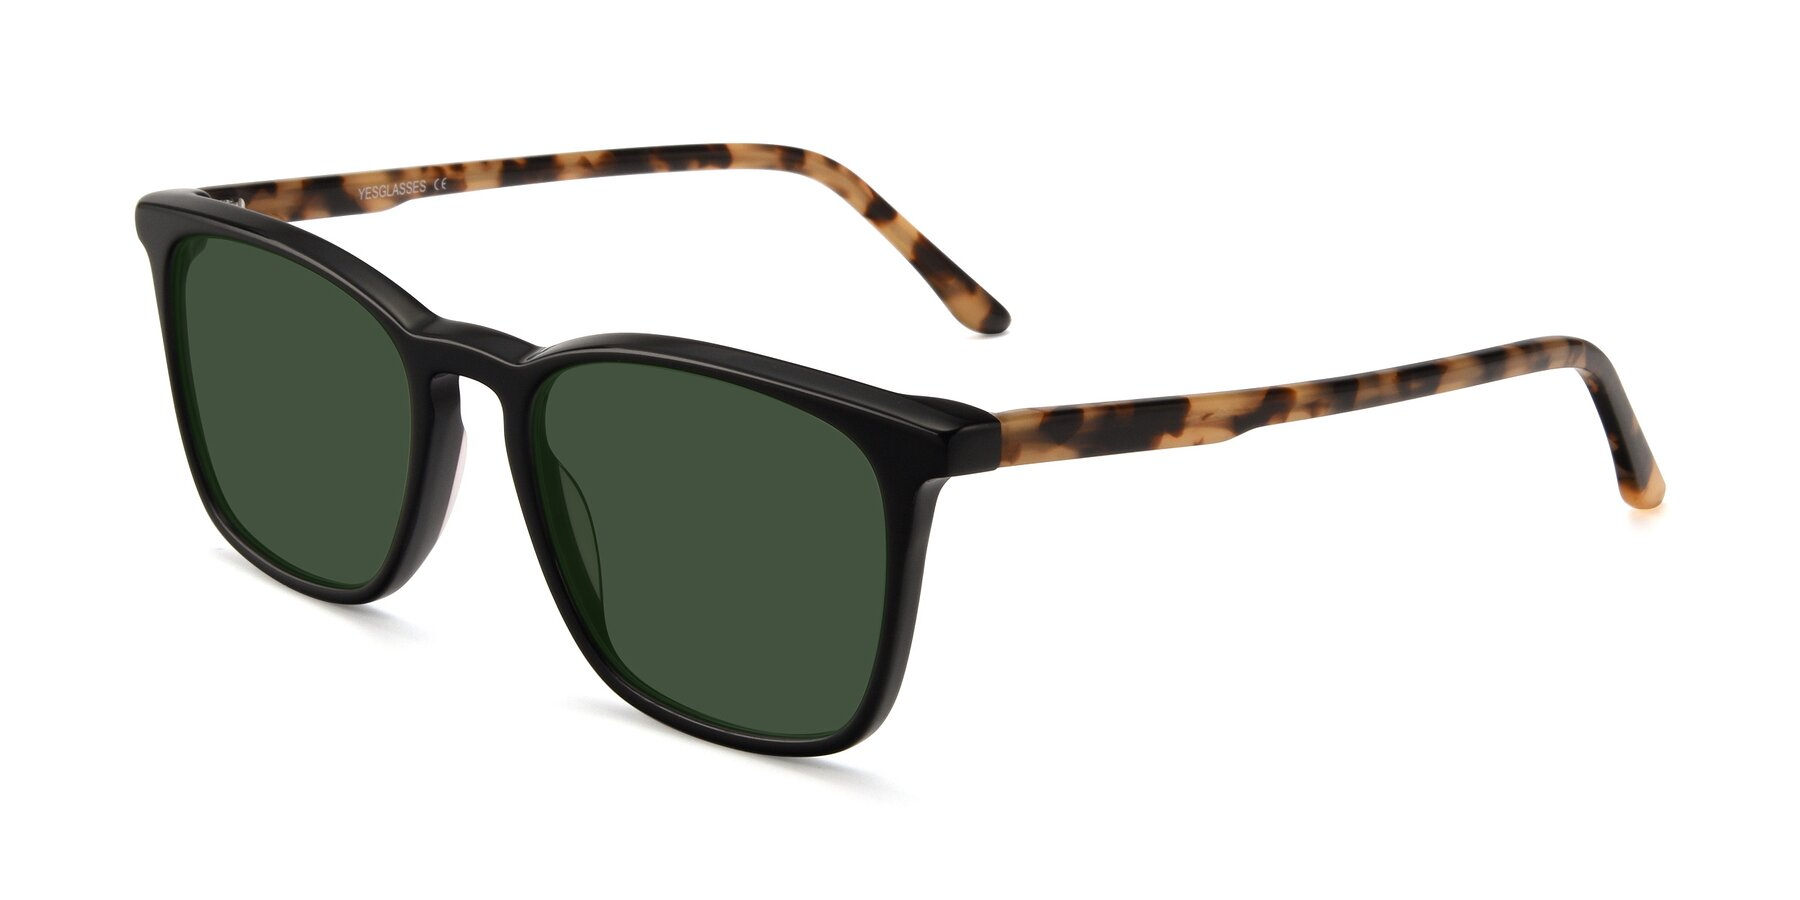 Angle of Vigor in Black-Tortoise with Green Tinted Lenses